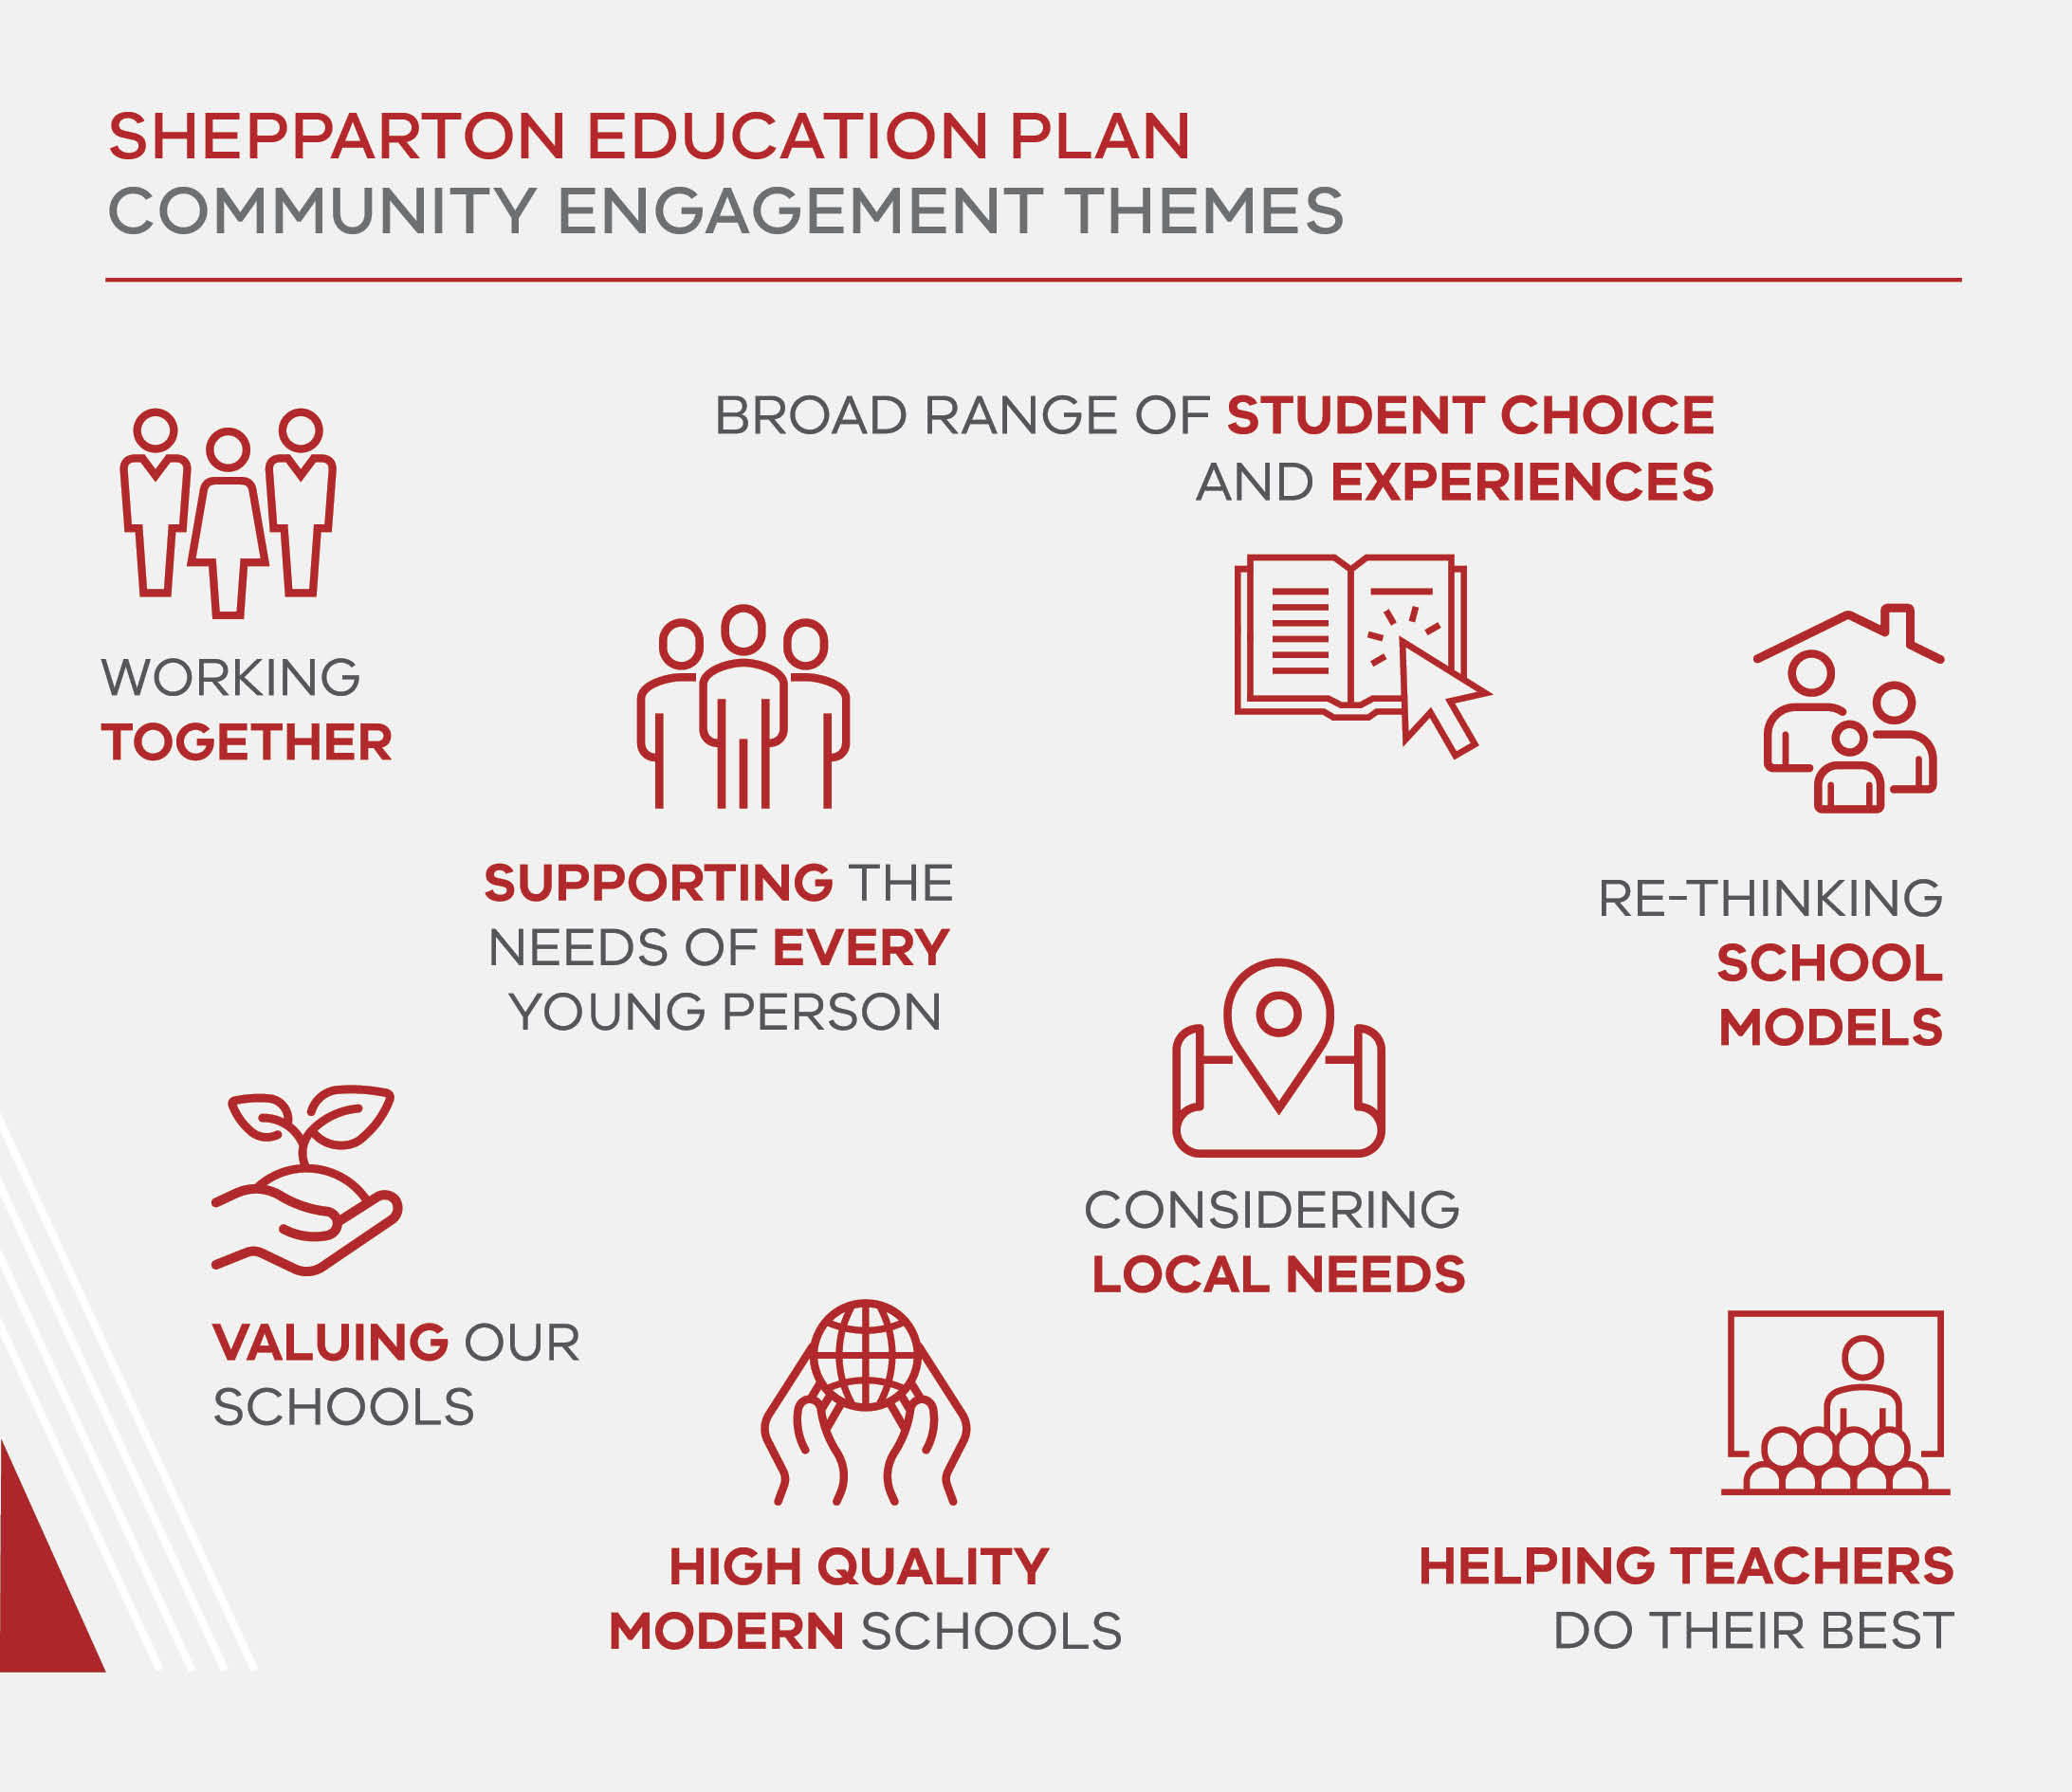 Infographic with main themes from engagement: Working together, broad range of student choice and experiences, supporting the needs of every young person, considering local needs, re-thinking school models, valuing our schools, high-quality modern schools